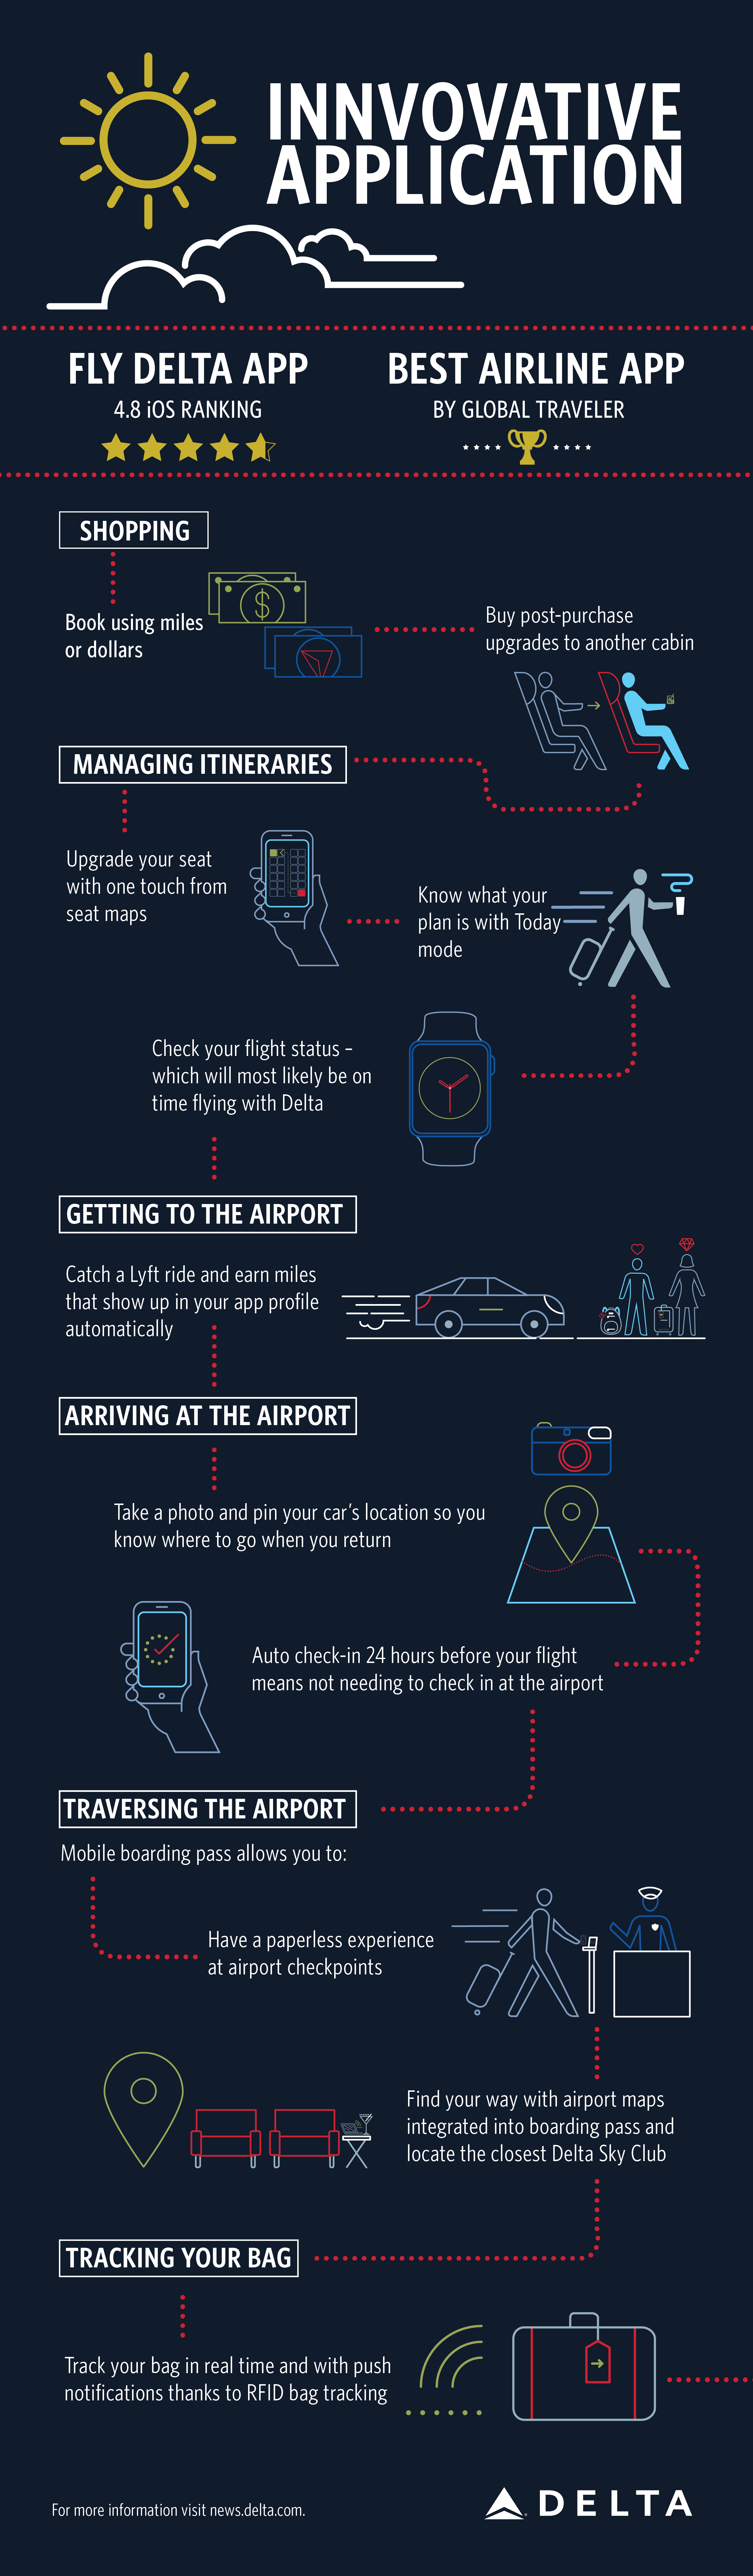 Fly Delta App Travel Journey